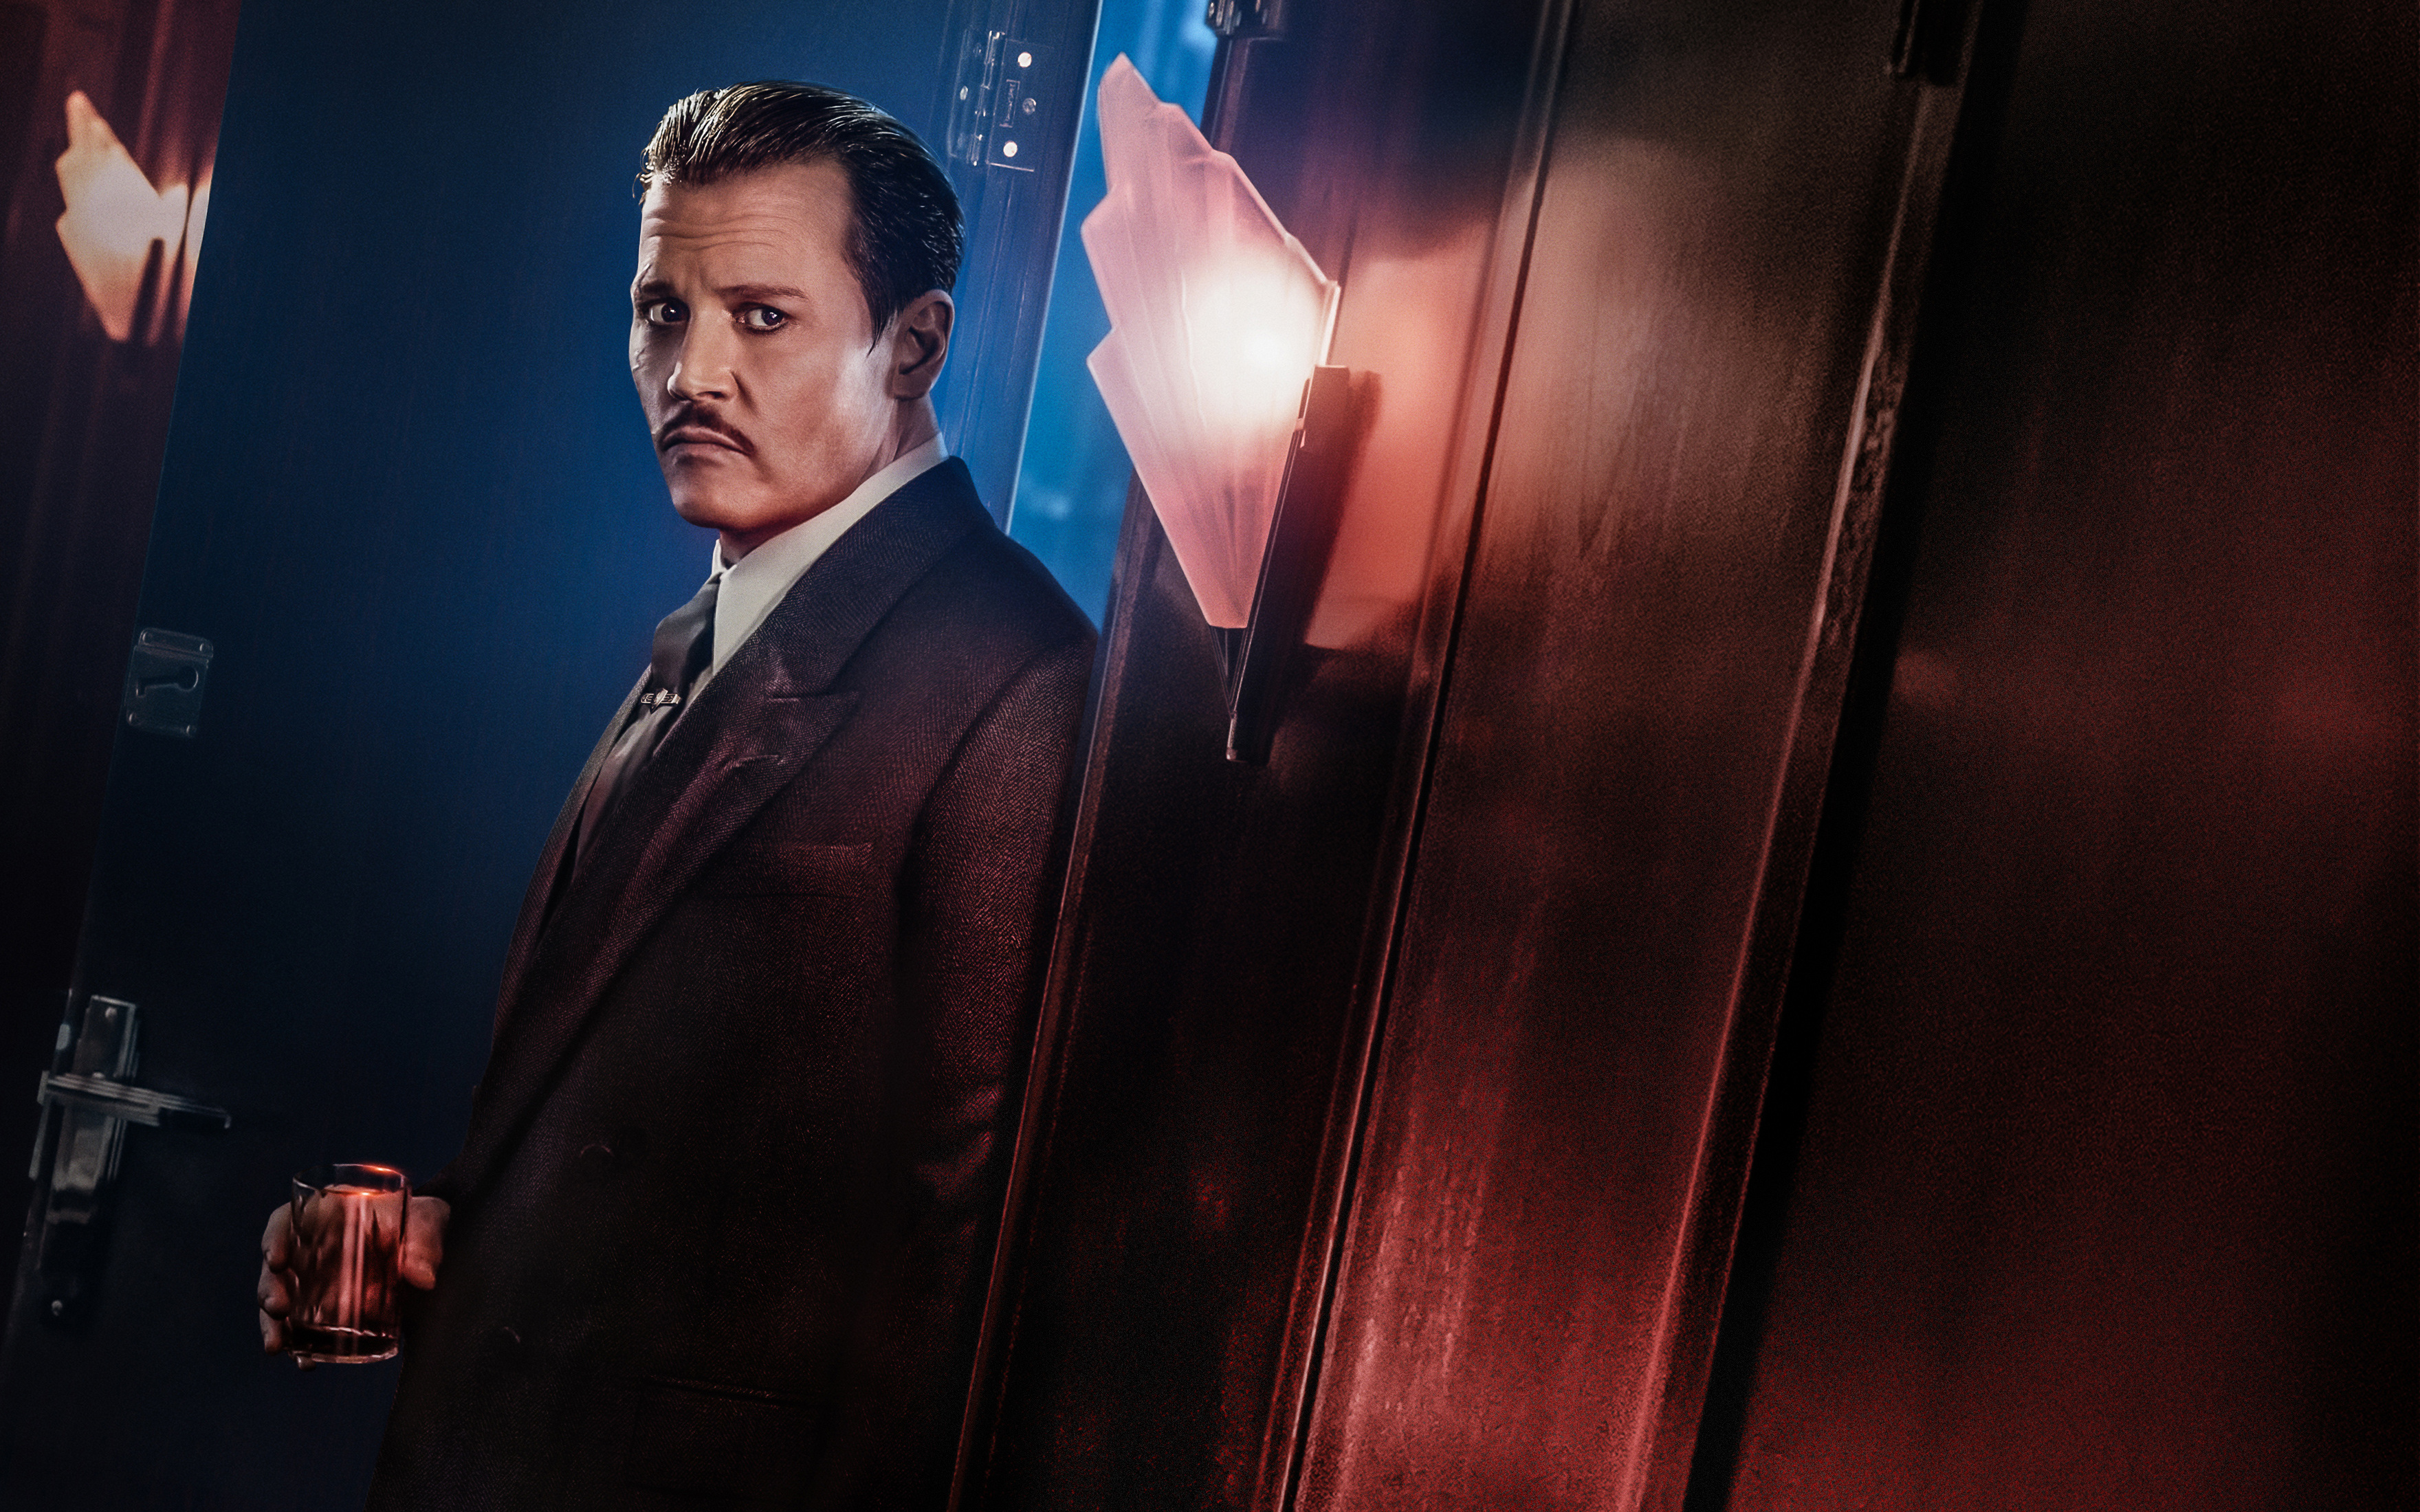 Johnny Depp In Murder On The Orient Express Wallpapers Hd Wallpapers